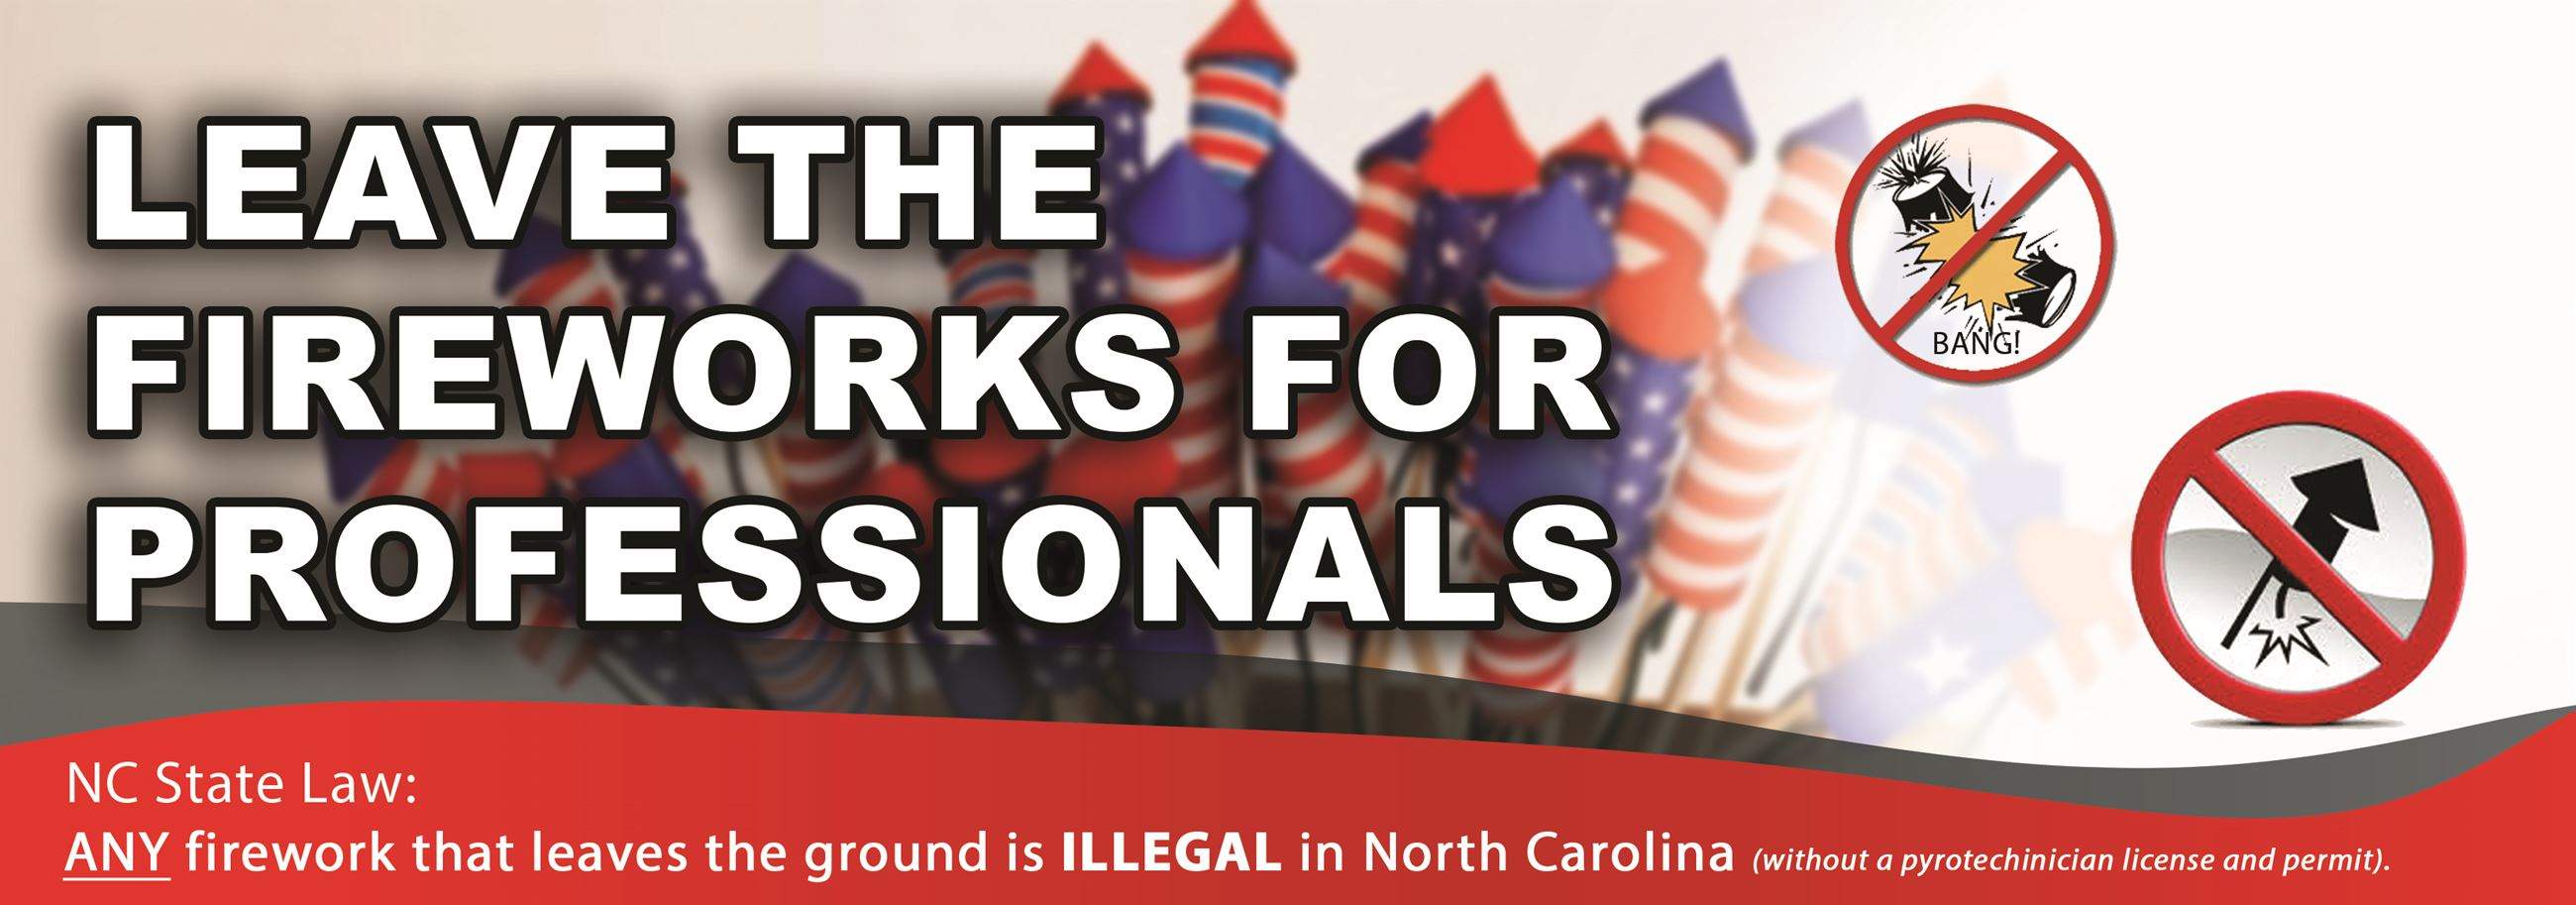 Leave the Fireworks for Professionals - Click for Rules and Safety